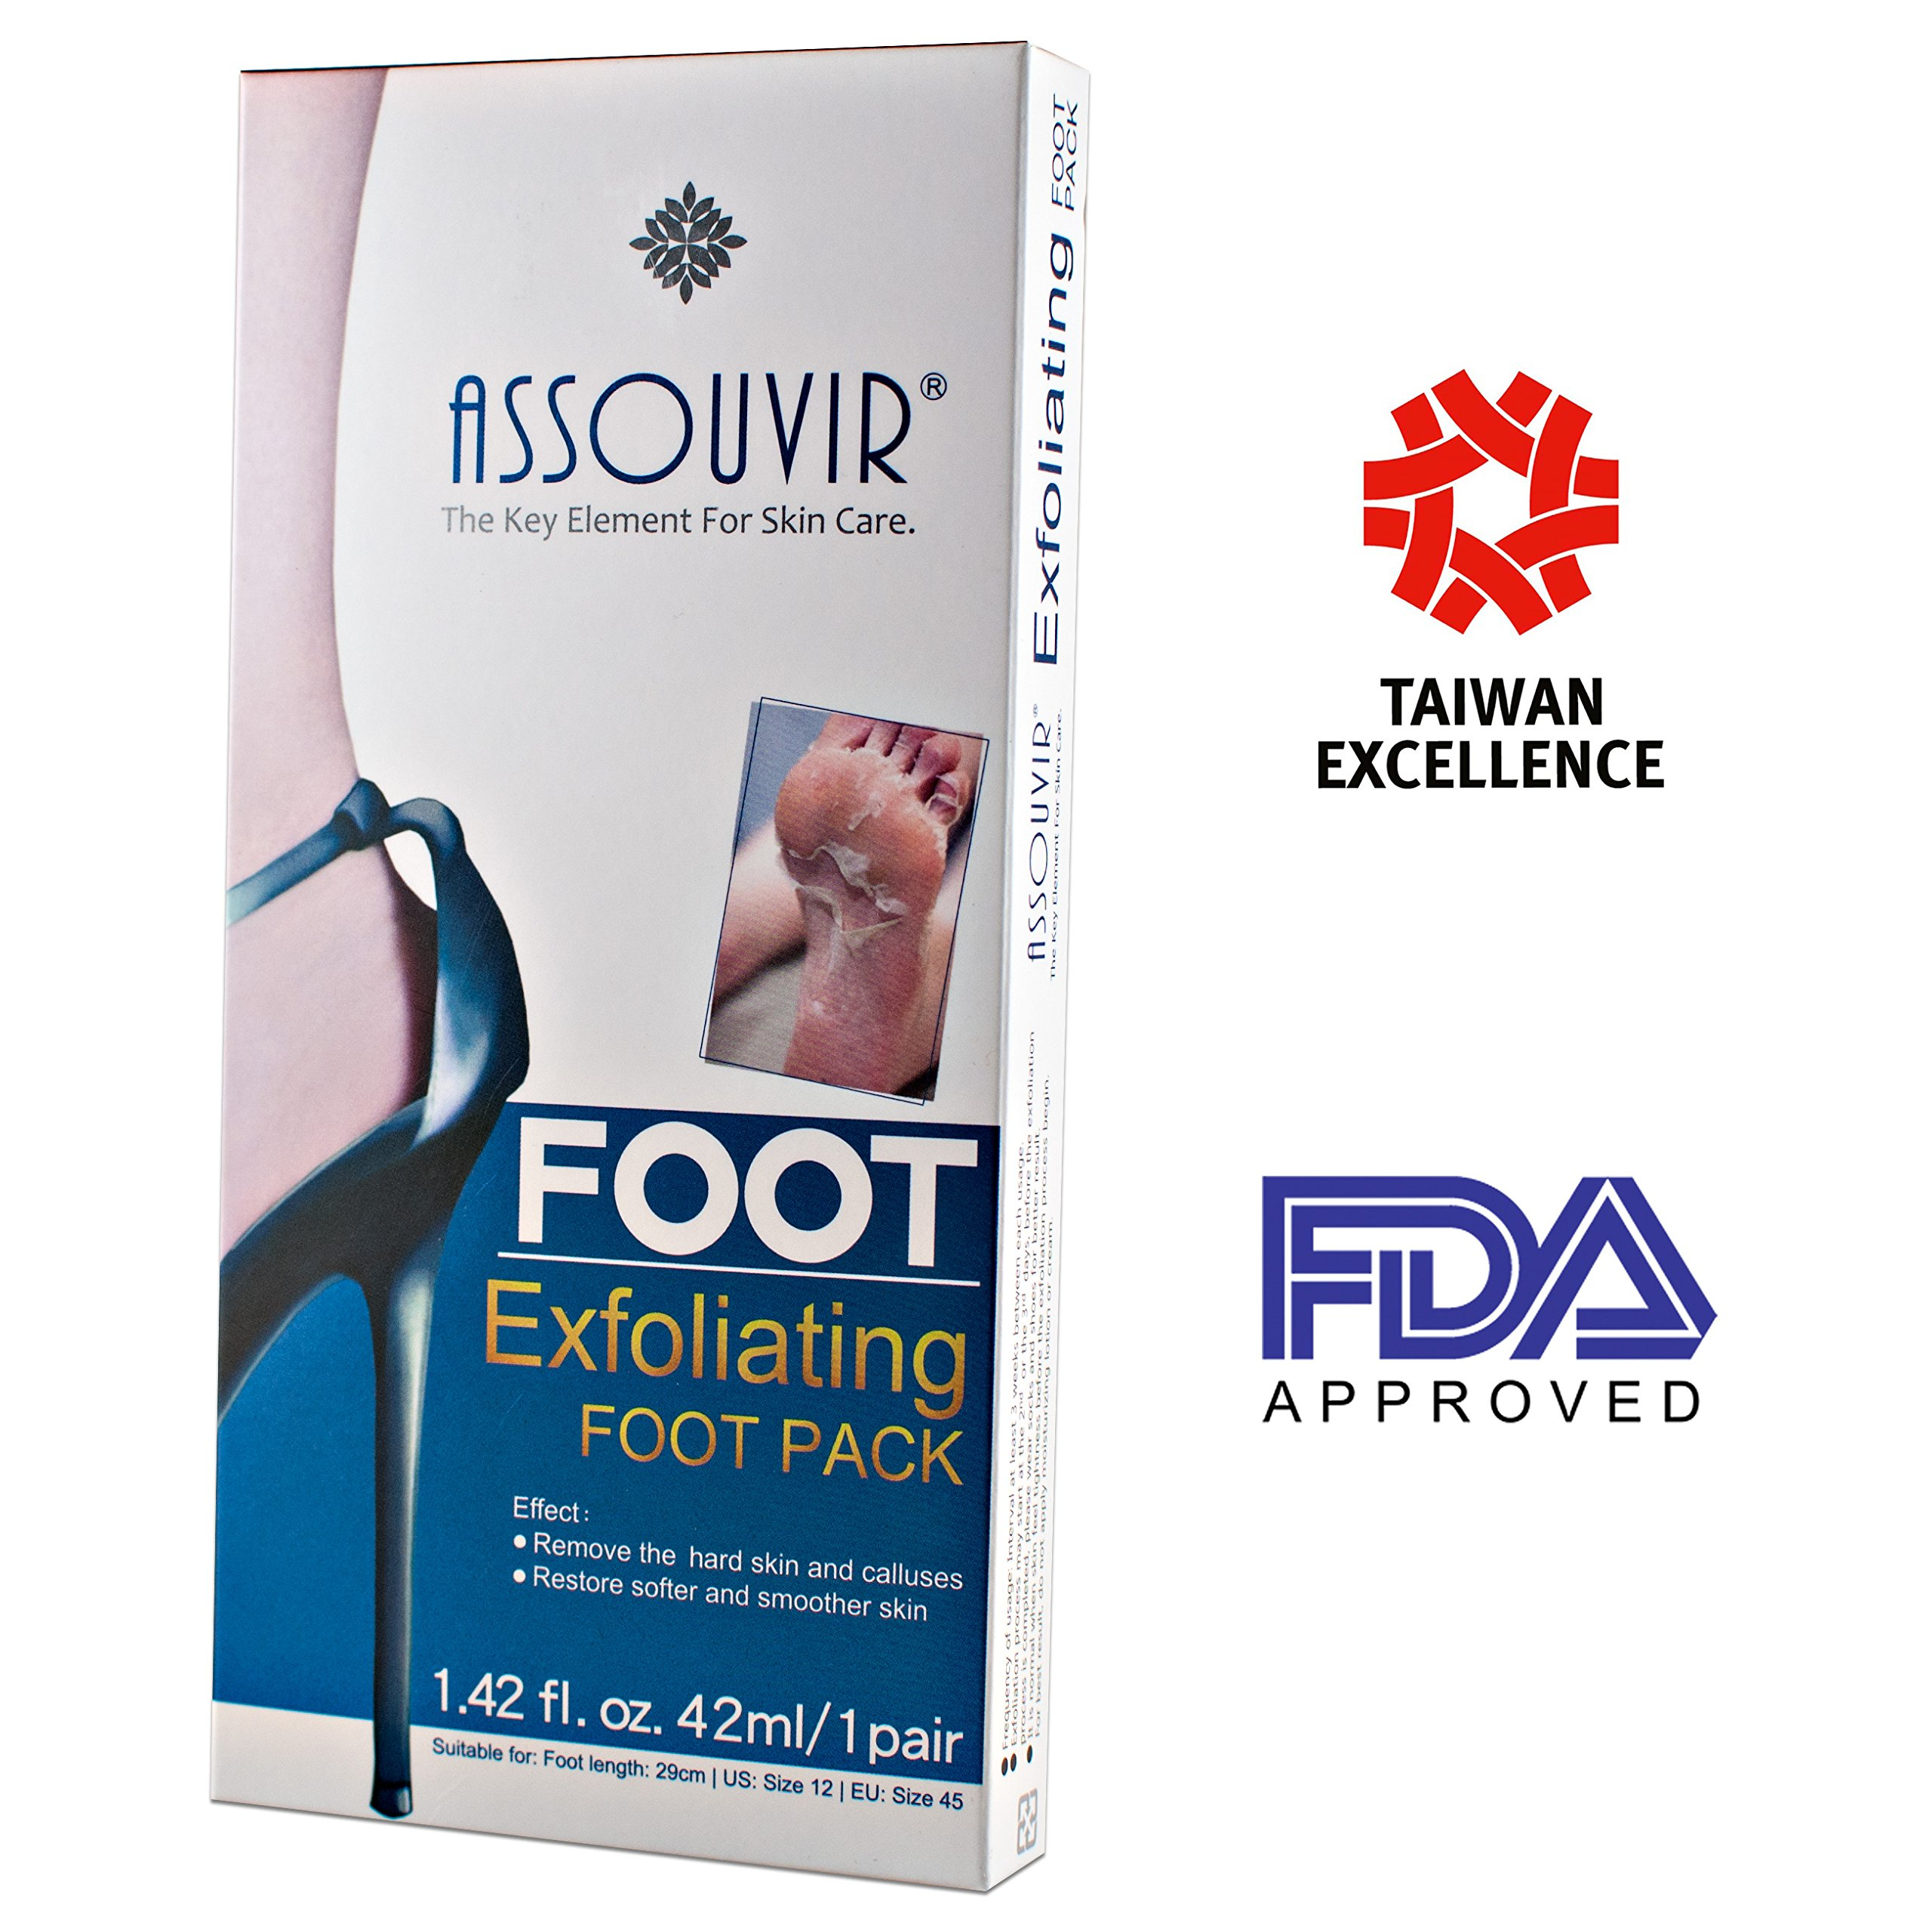 Exfoliating Feet Peel Mask - Baby Foot Peeling Mask for Calluses and Dead Skin Cells Remove - Get Gentle Soft,Silky Heel - Smooth Soft Touch Feet  - Natural Extracts Only